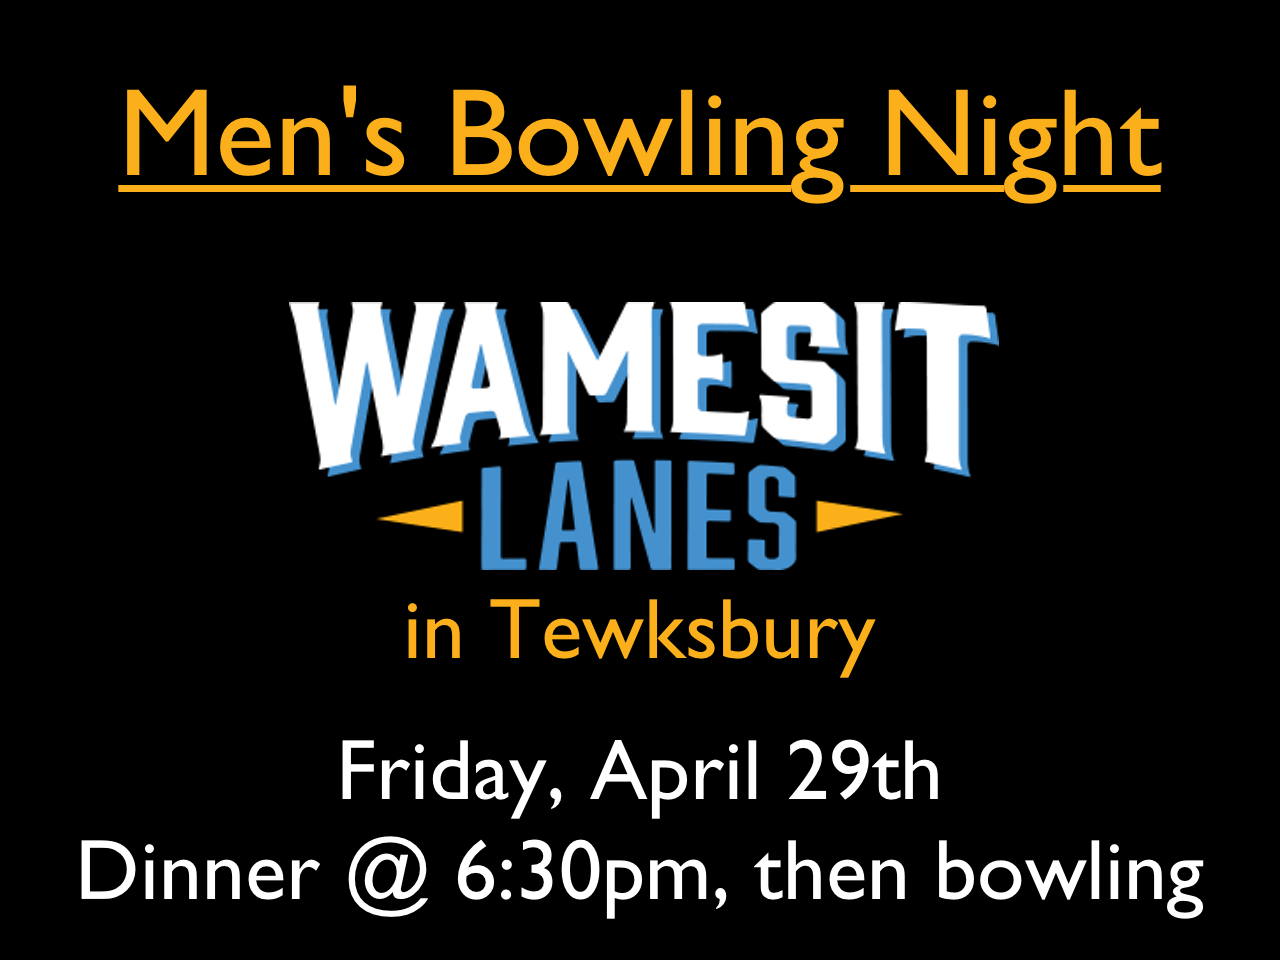 Join the men of BrookRidge on Friday, April 29th,for a night out of dinner & bowling at Wamesit Lanes in Tewksbury, MA. Meet there for dinner at 6:30pm and stay for some bowling.For more info, contact Chris Salamone at 781-589-0549.